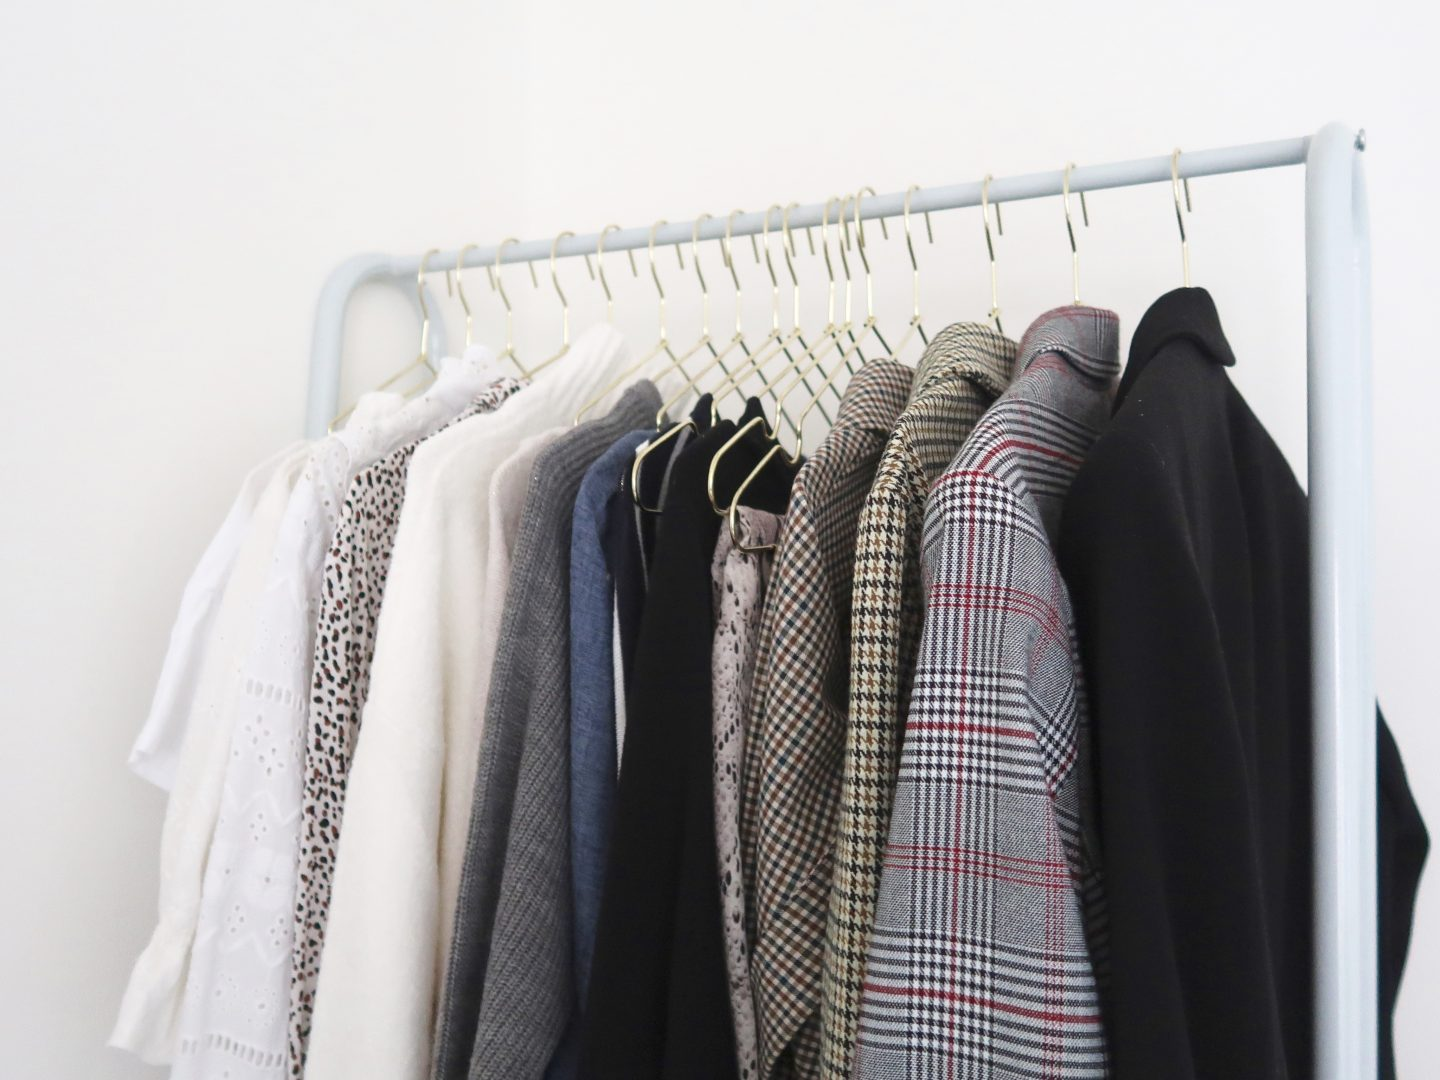 Easy steps for a wardrobe declutter